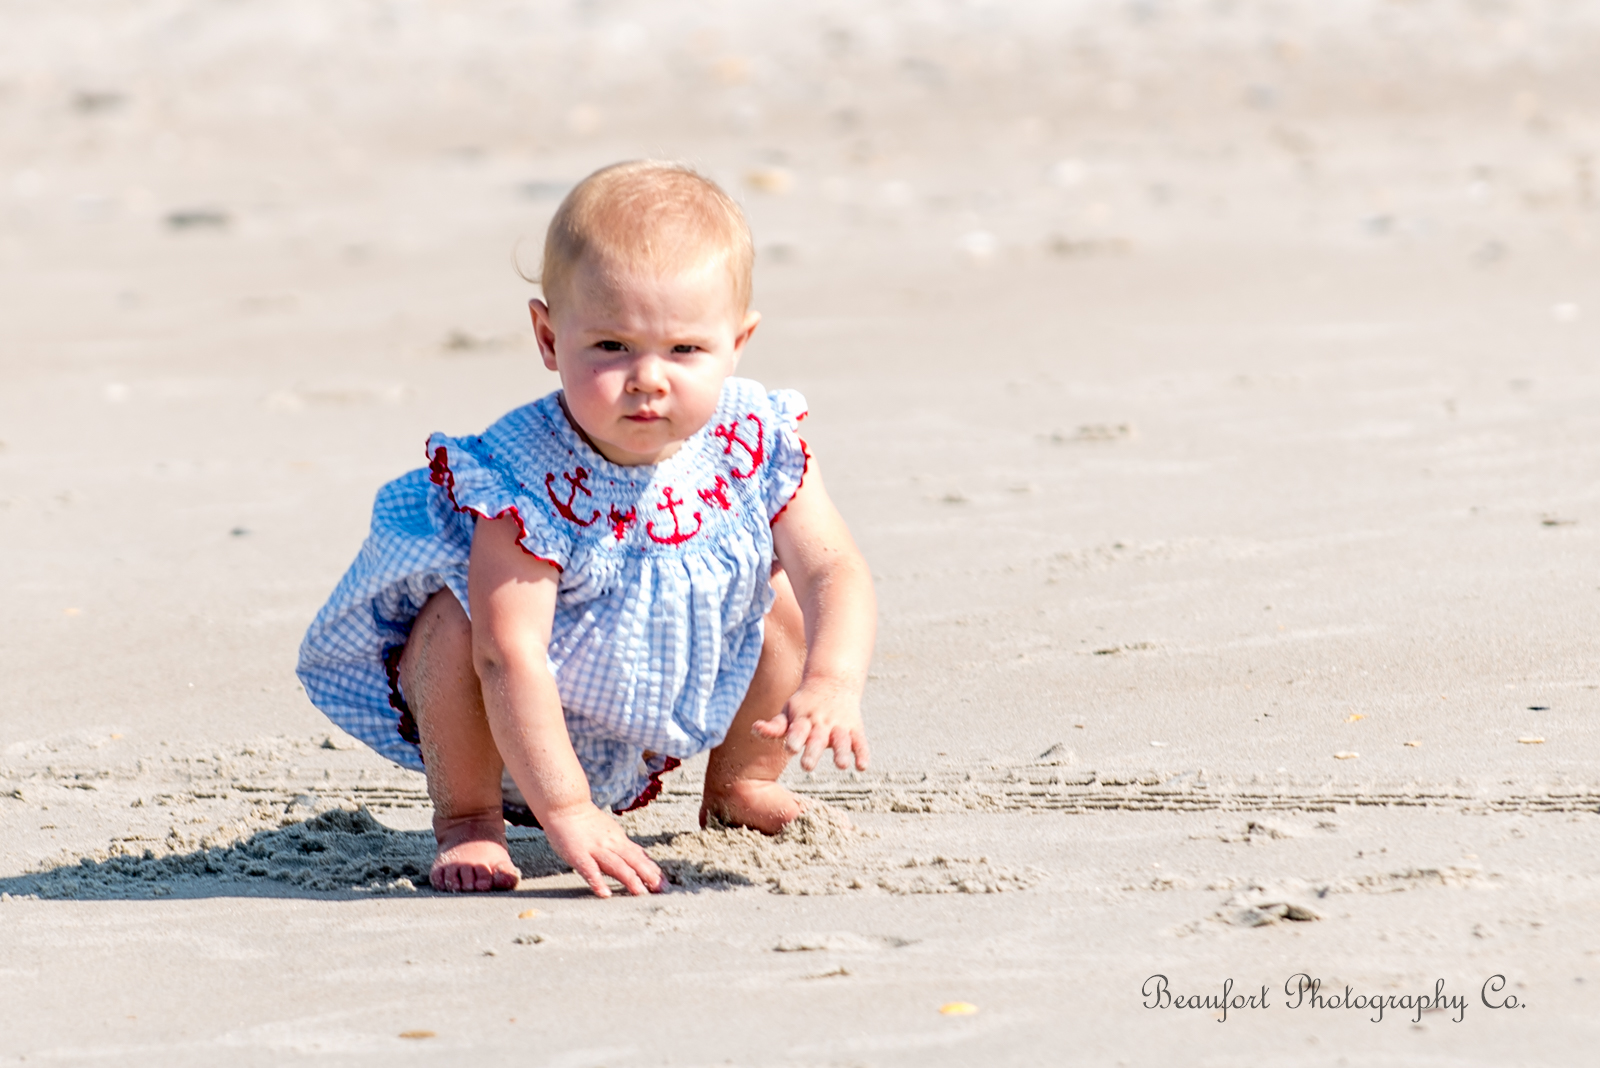 Beaufort Photography Co. family lifestyle portrait beautiful crystal coast morning